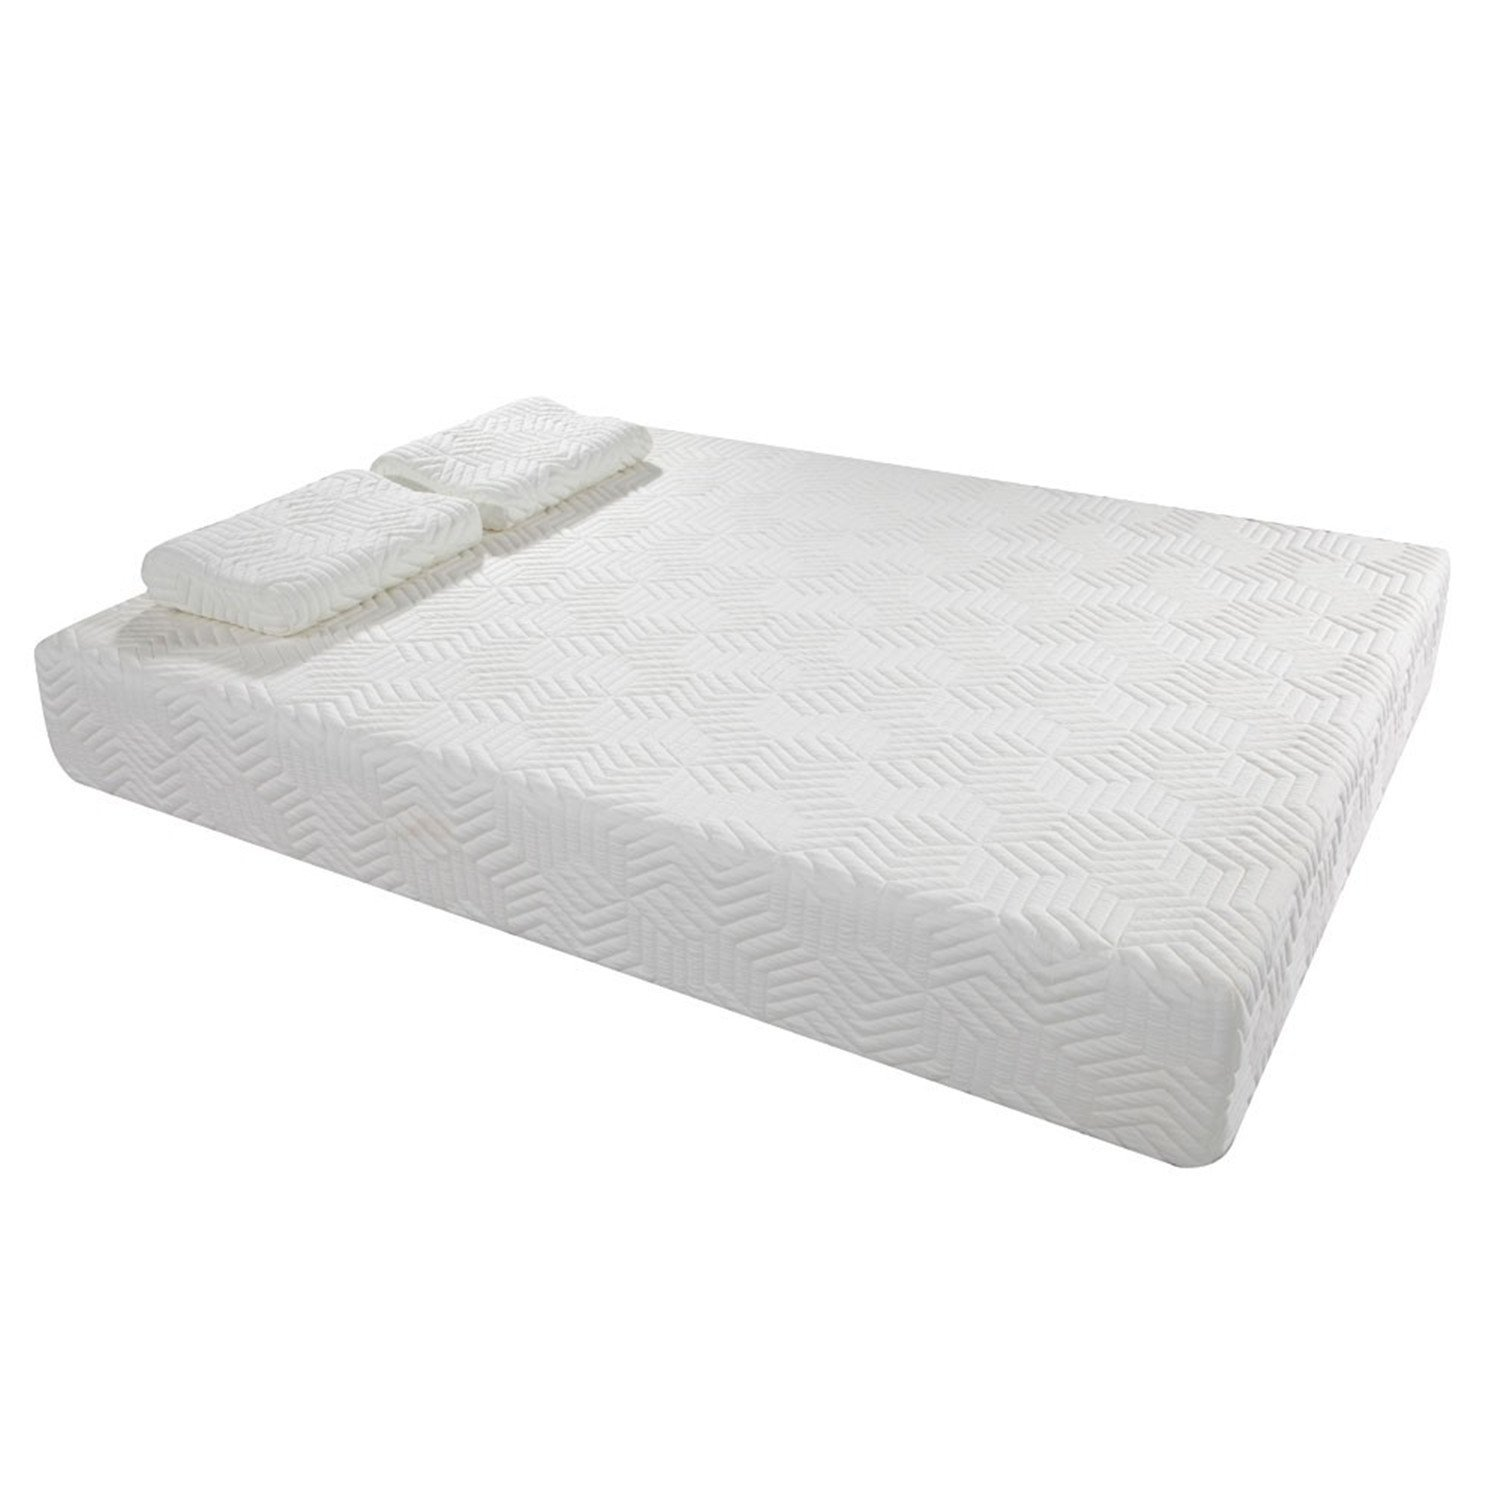 SHUTAO 10'' Two Layers Traditional Firm High Softness Cotton Mattress with 2 Pillows (Queen Size) White